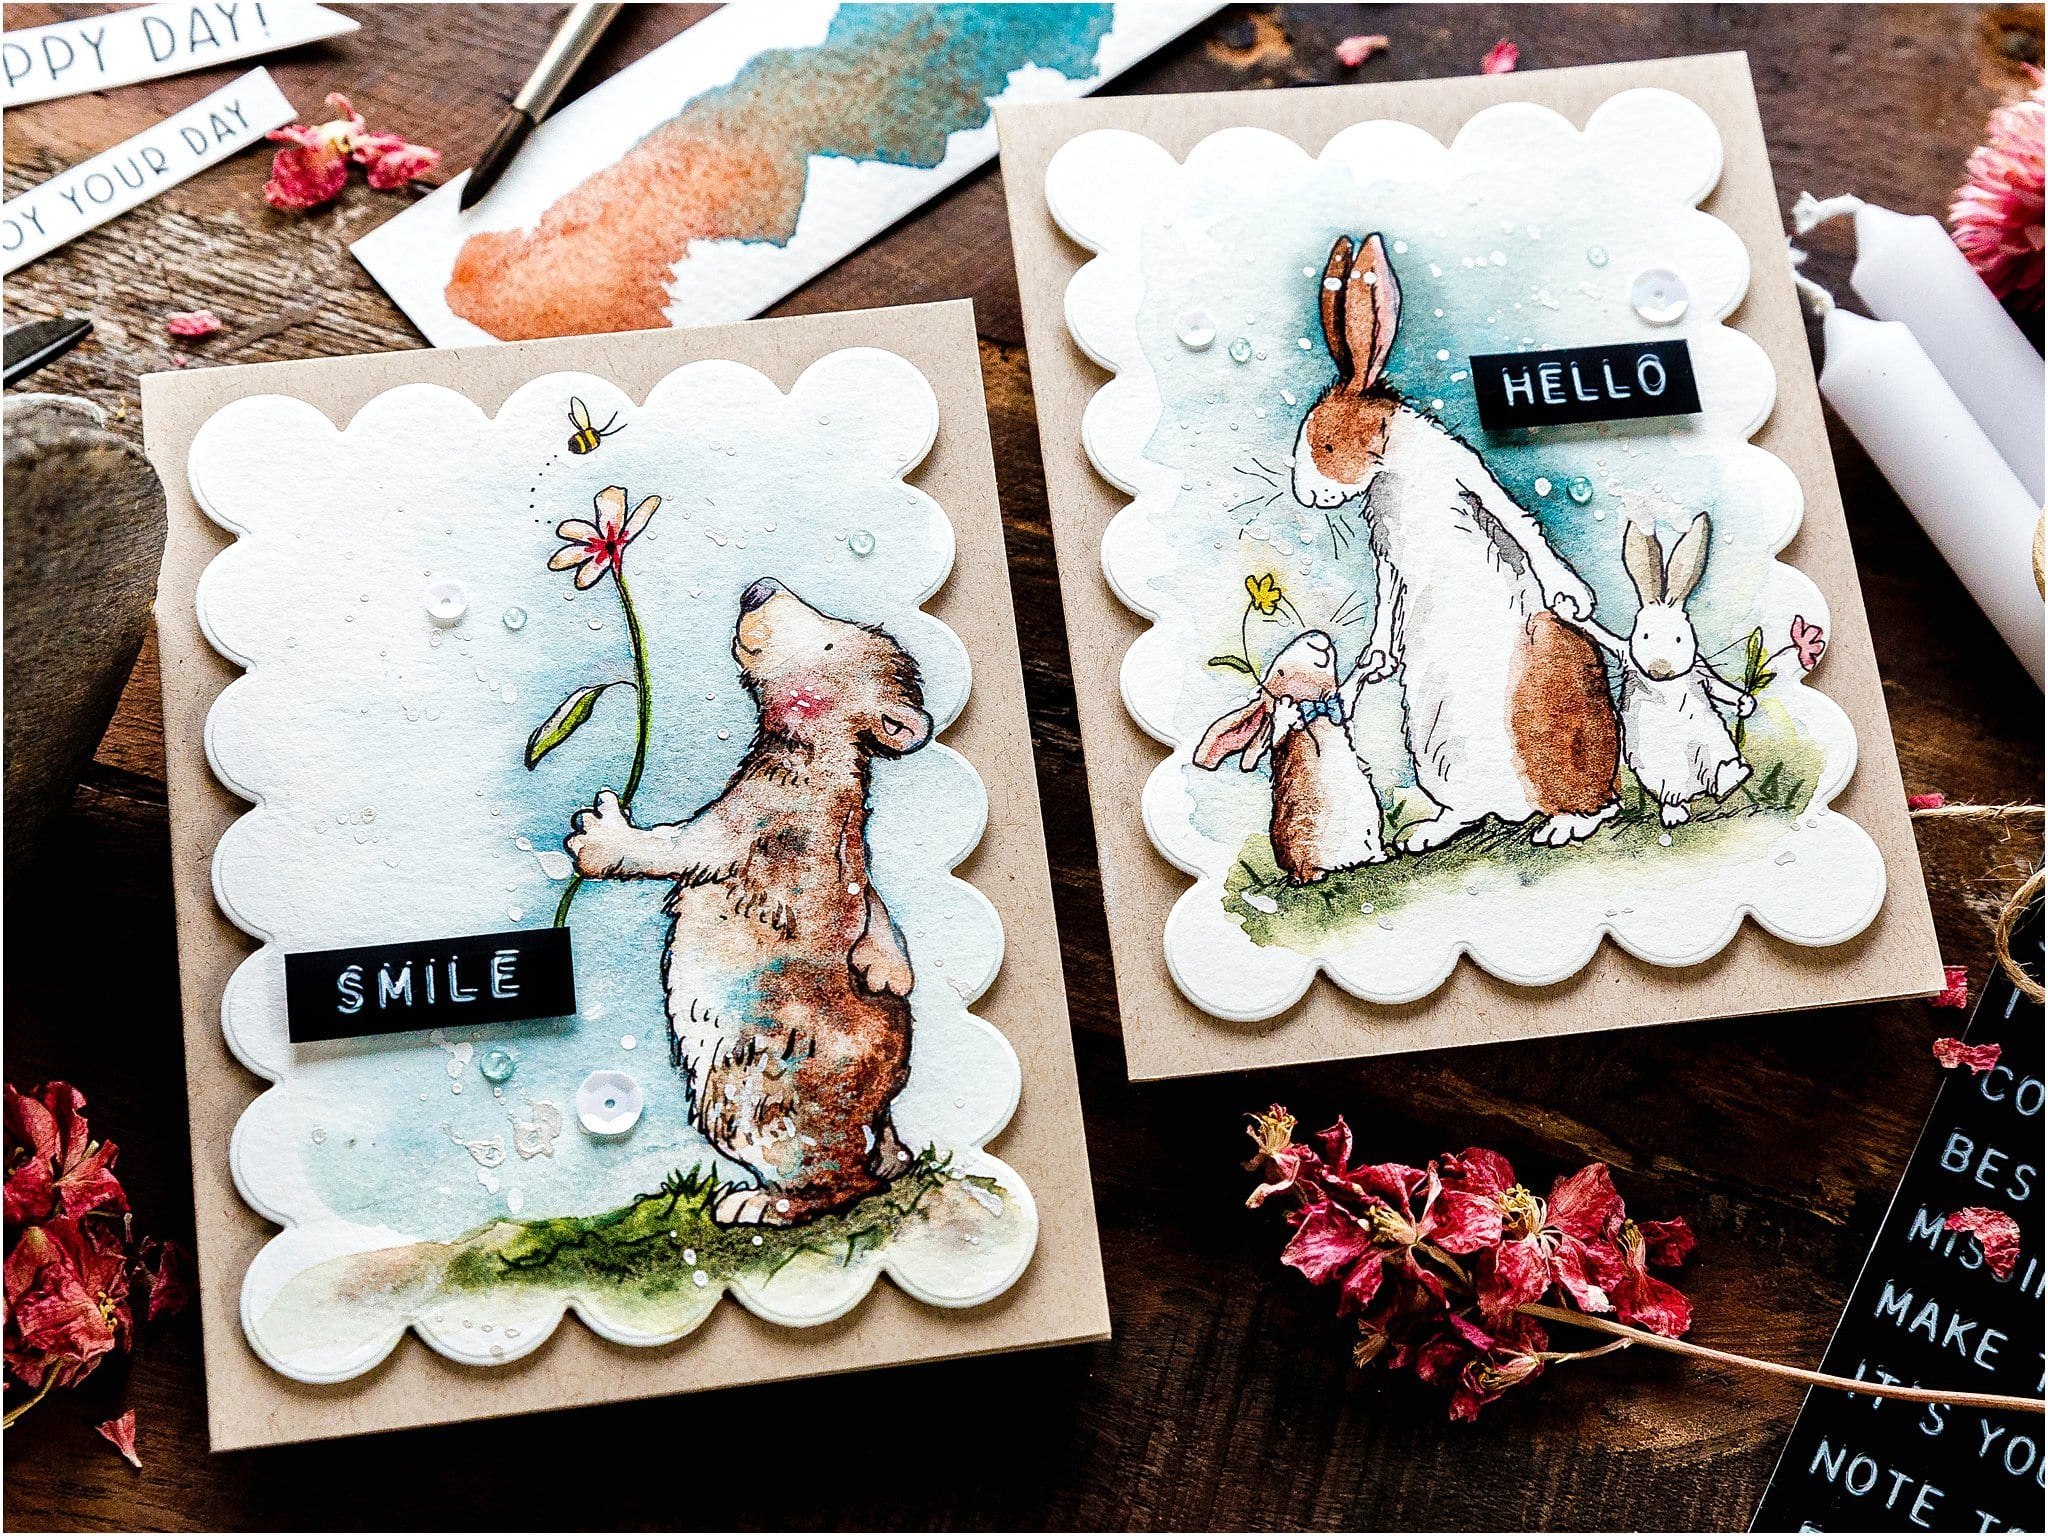 Video tutorial - watercoloured children's illustrations by Anita Jeram for handmade cards! Design by Debby Hughes using supplies from Colorado Craft Company #handmadecards #cardmaking #cardmakingideas #cardmakingtechniques  #cardmakingtutorials #handmadecardideas #coloradocraftcompany